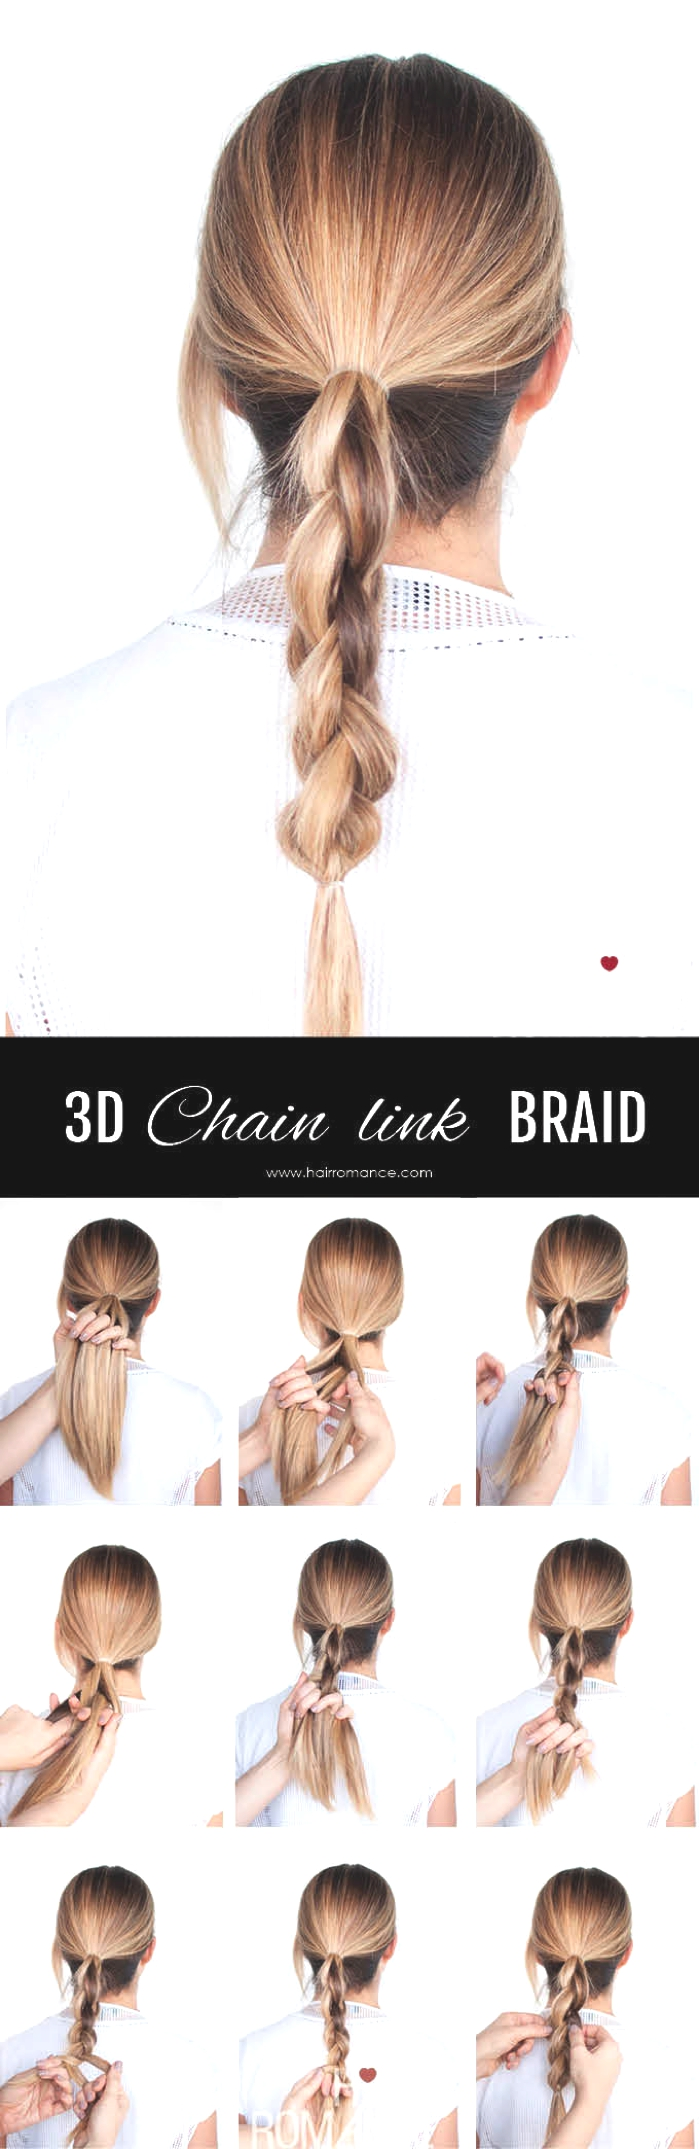 Ponytail Hairstyle Ideas | 3D Chain Braid Tutorial 03